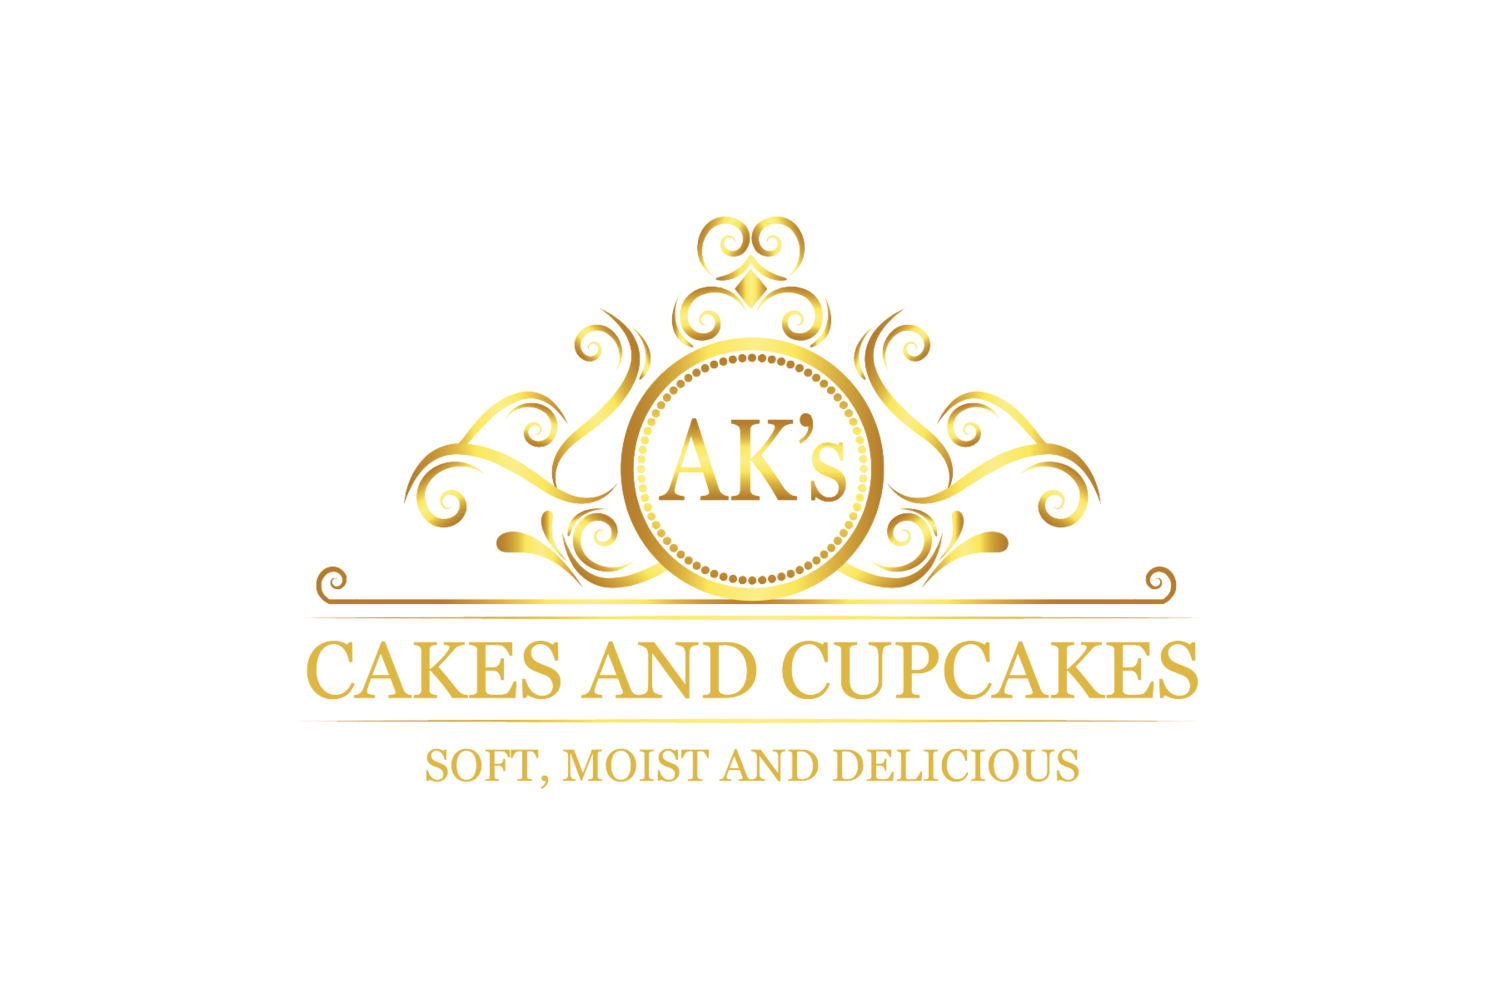 AK's Cakes and Cupcakes